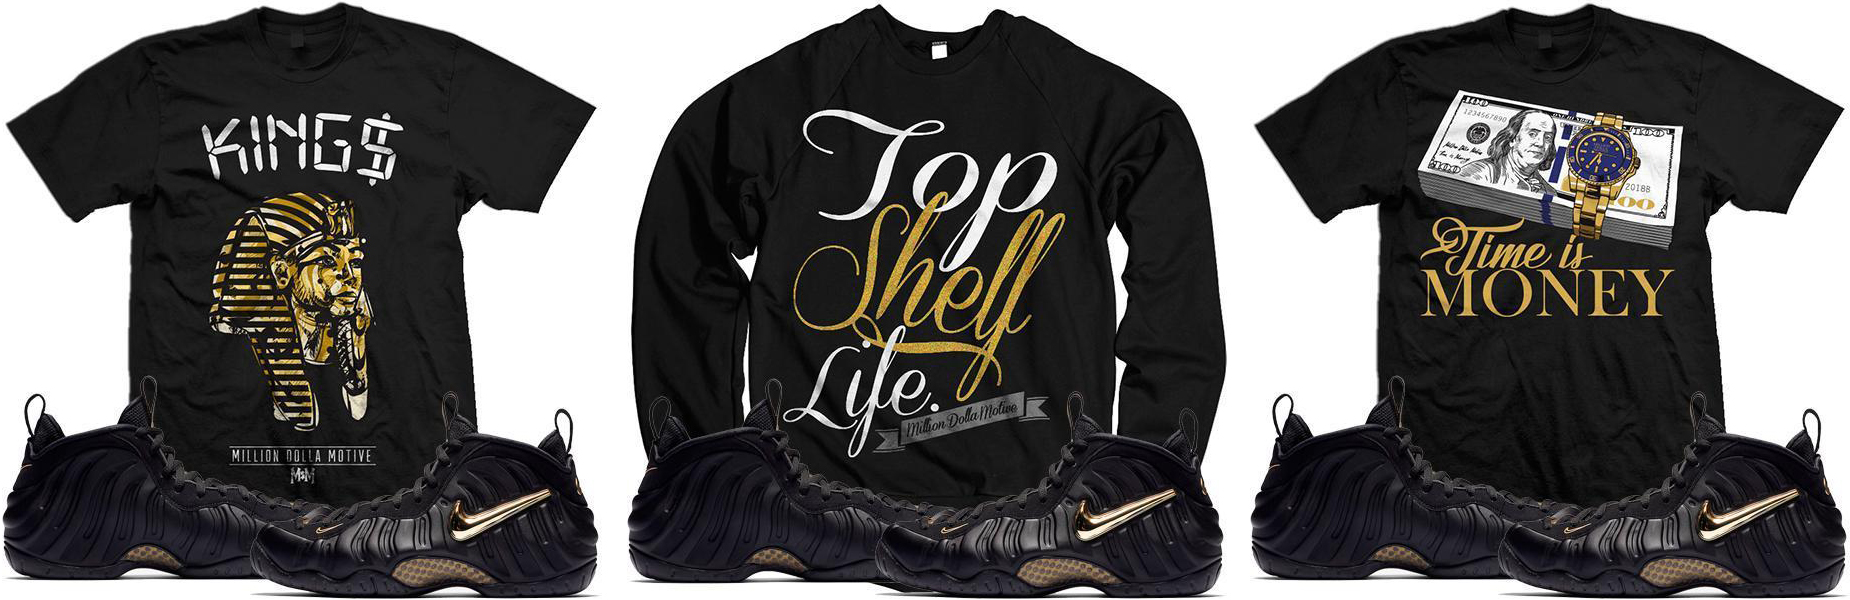 4428a950b5796 Black Metallic Gold Foamposite Sneaker Tees | SneakerFits.com